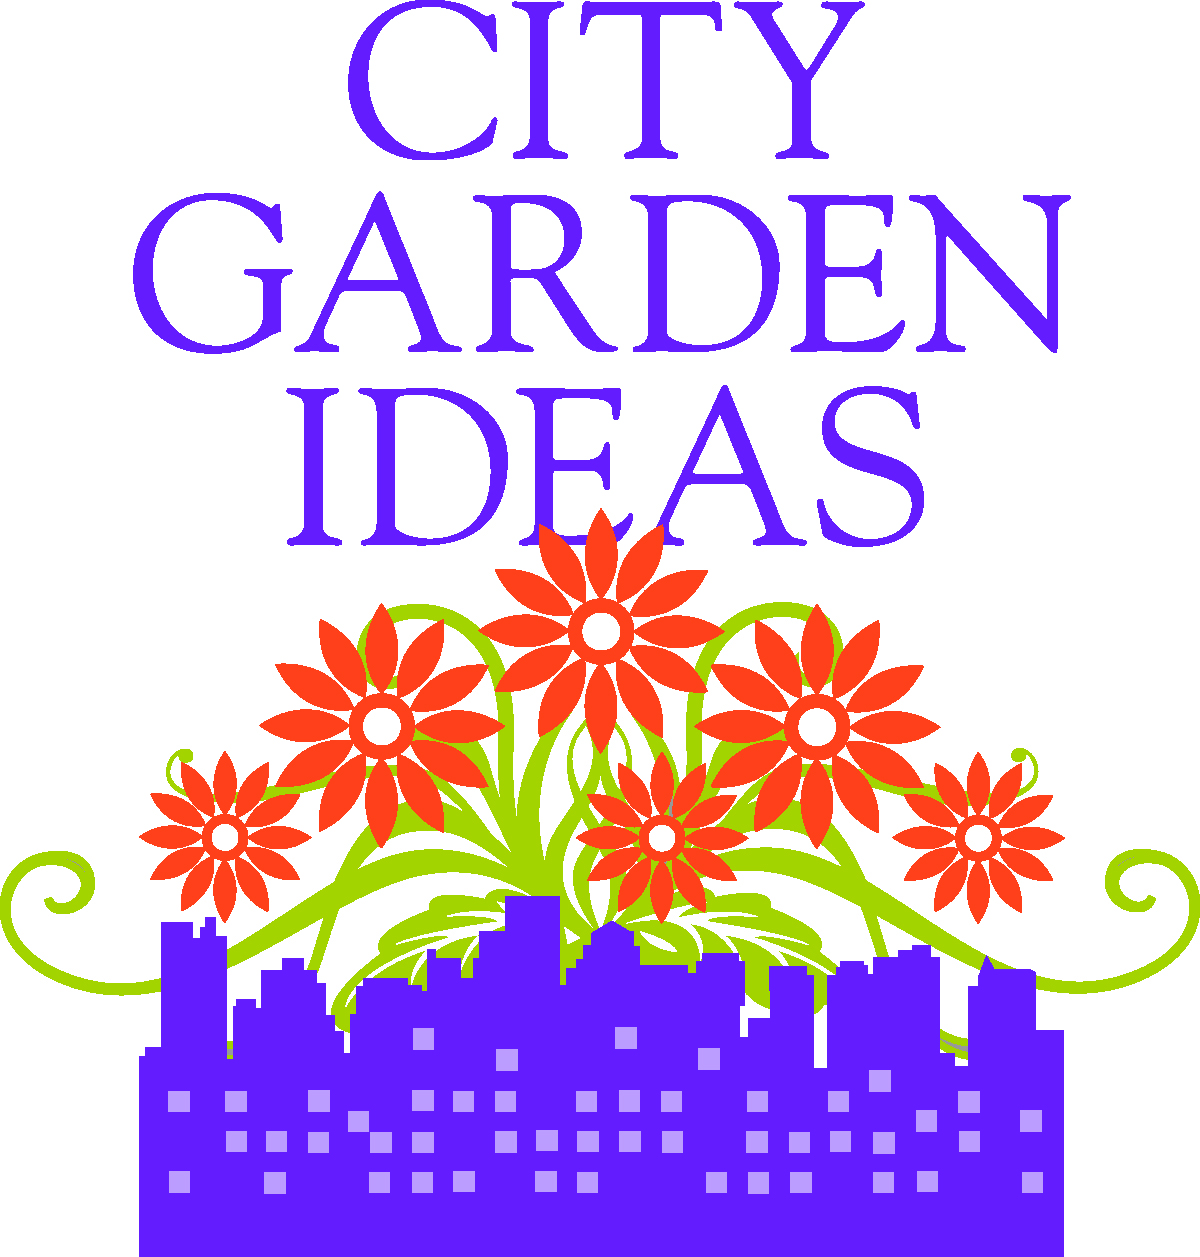 City Garden Ideas Workshop Tomorrow! | City Garden Ideas